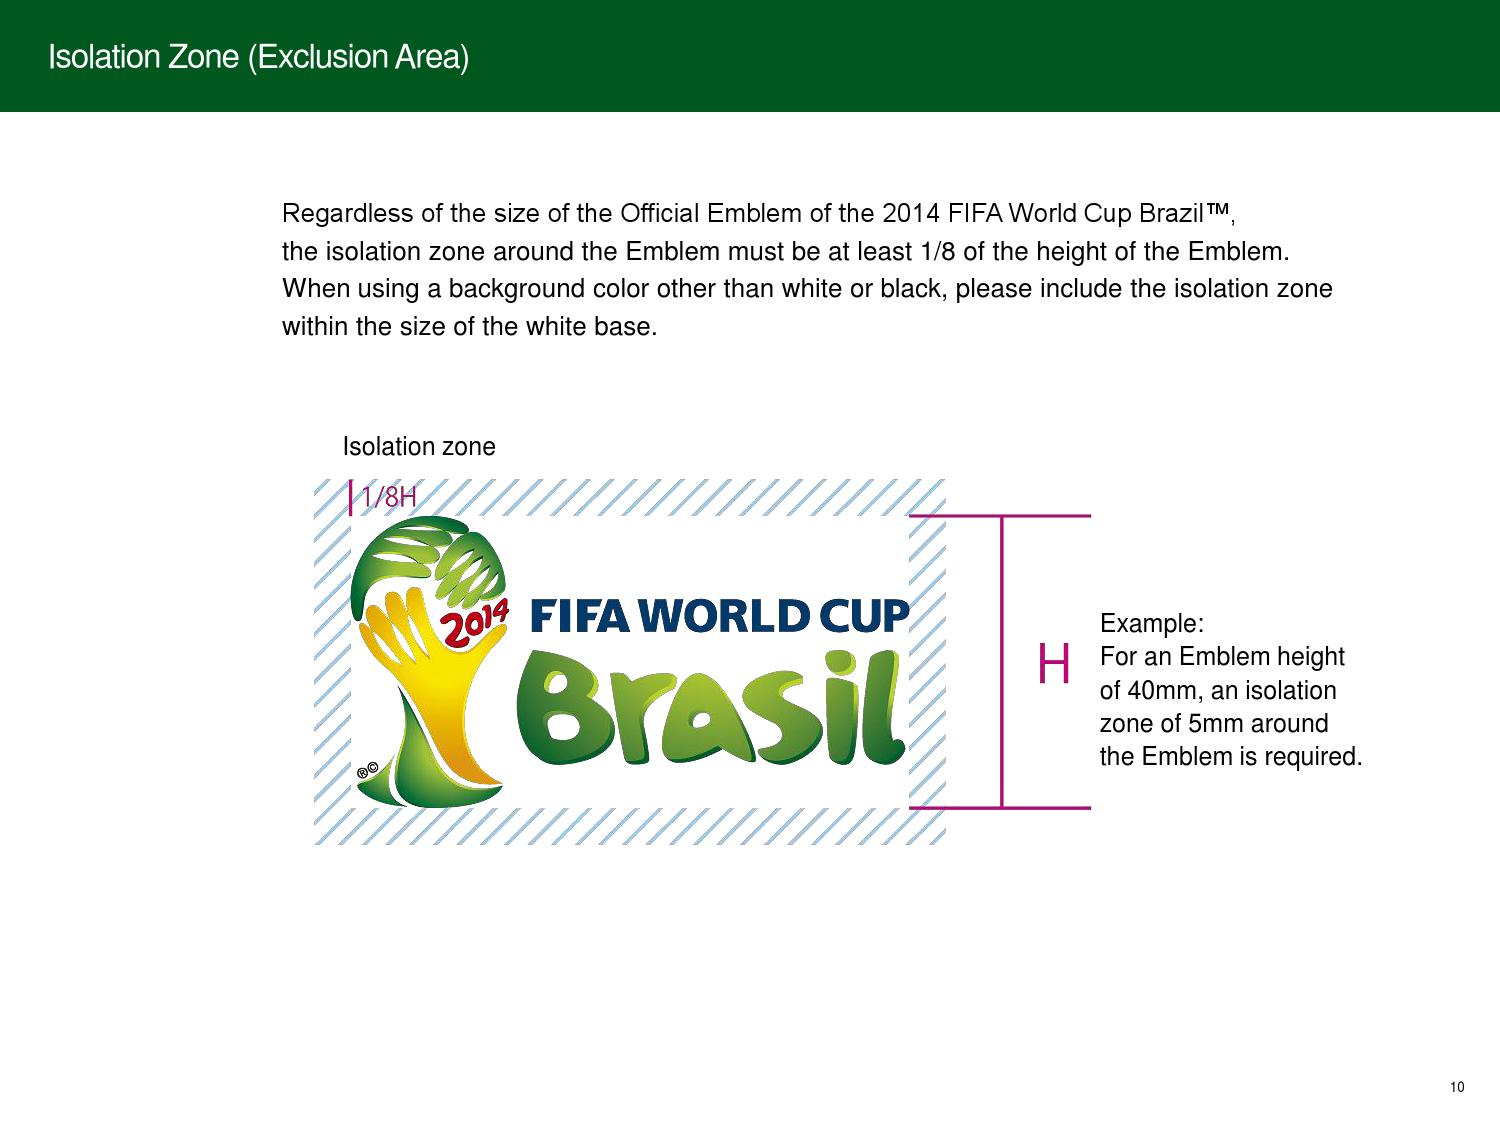 c84f759c47a 2014 FIFA World Cup Brazil Packaging Design Guidelines by LOGOBR - issuu